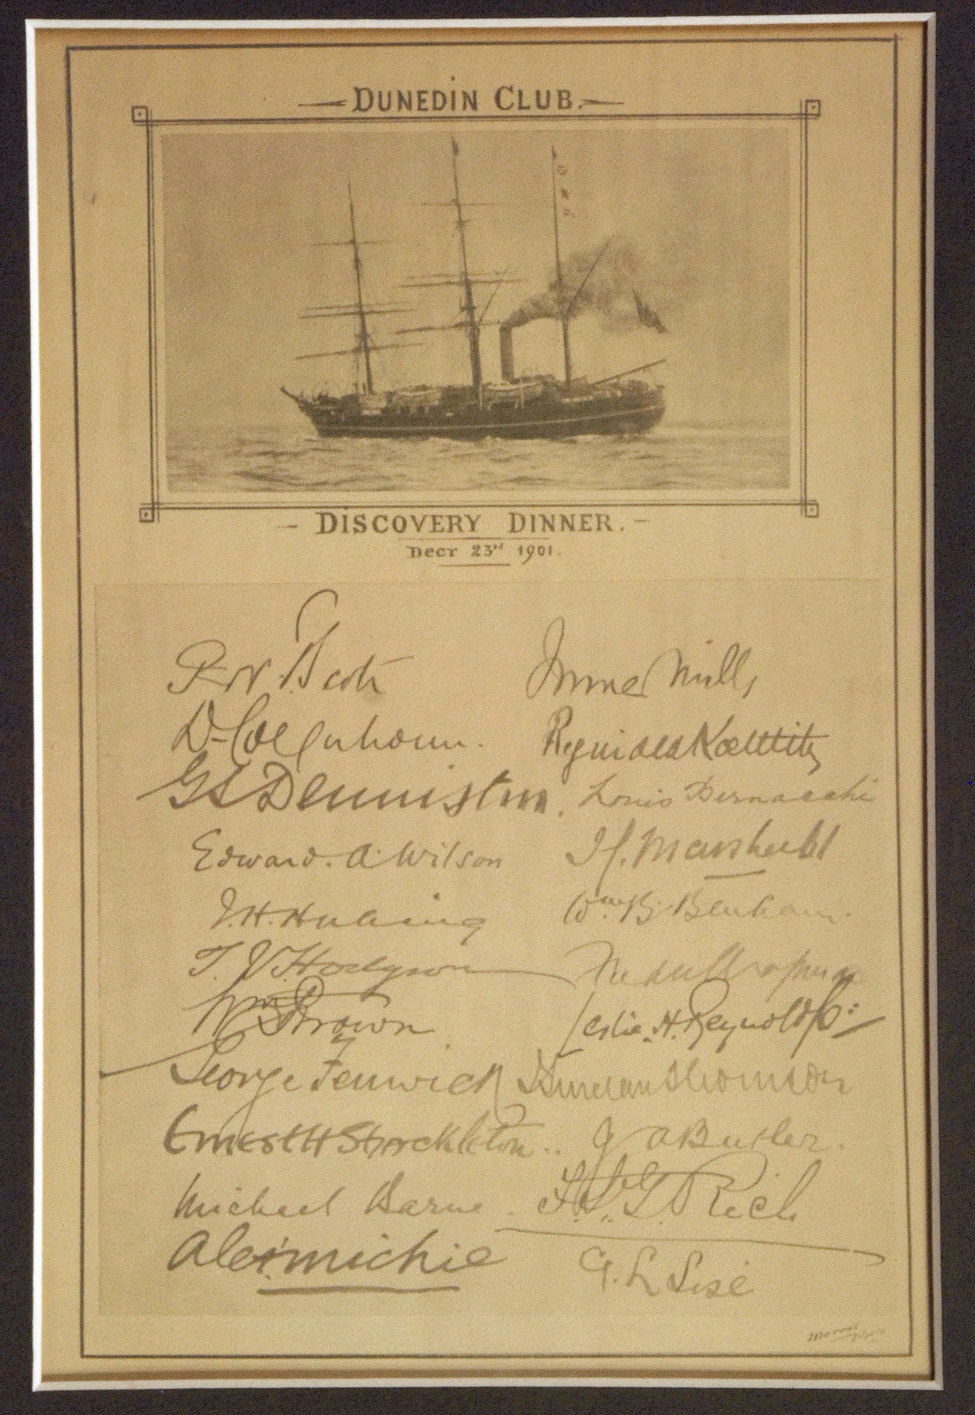 'Discovery Dinner' memento [framed], signed by Robert Falcon Scott, Edward Wilson, Ernest Shackleton and other members of the Discovery expedition crew, Dunedin Club, 23 December 1901